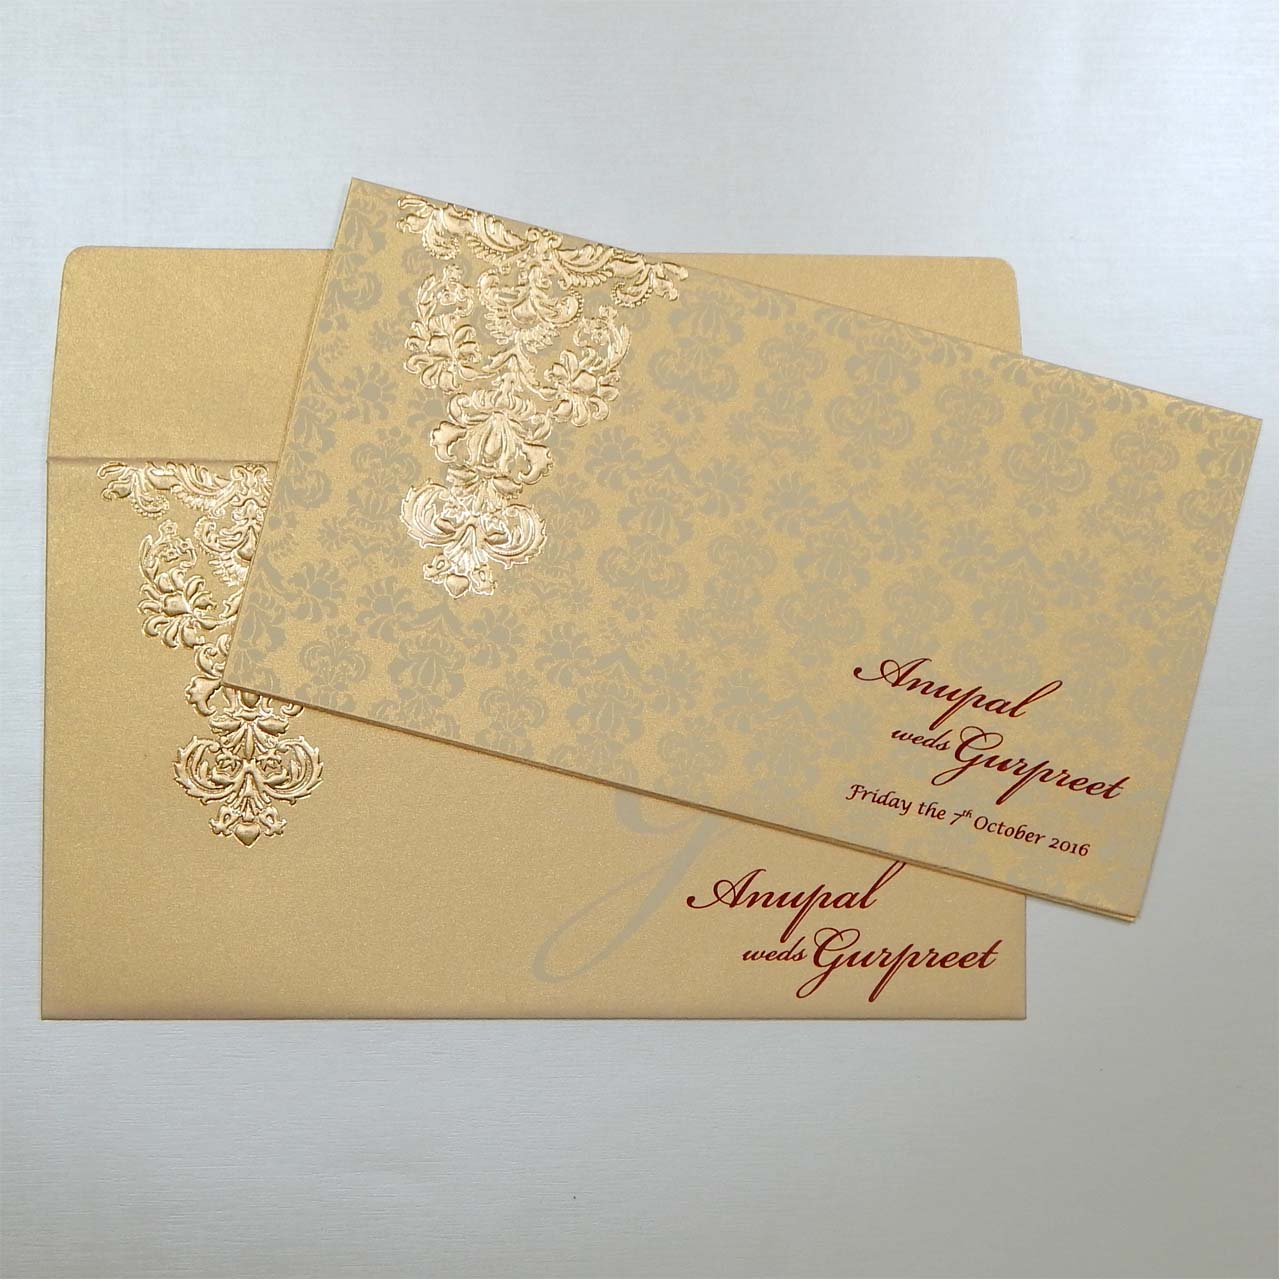 sanjh savera cards buy online indian wedding cards, indian Wedding Invitation Cards Gta Wedding Invitation Cards Gta #5 wedding invitation cards templates